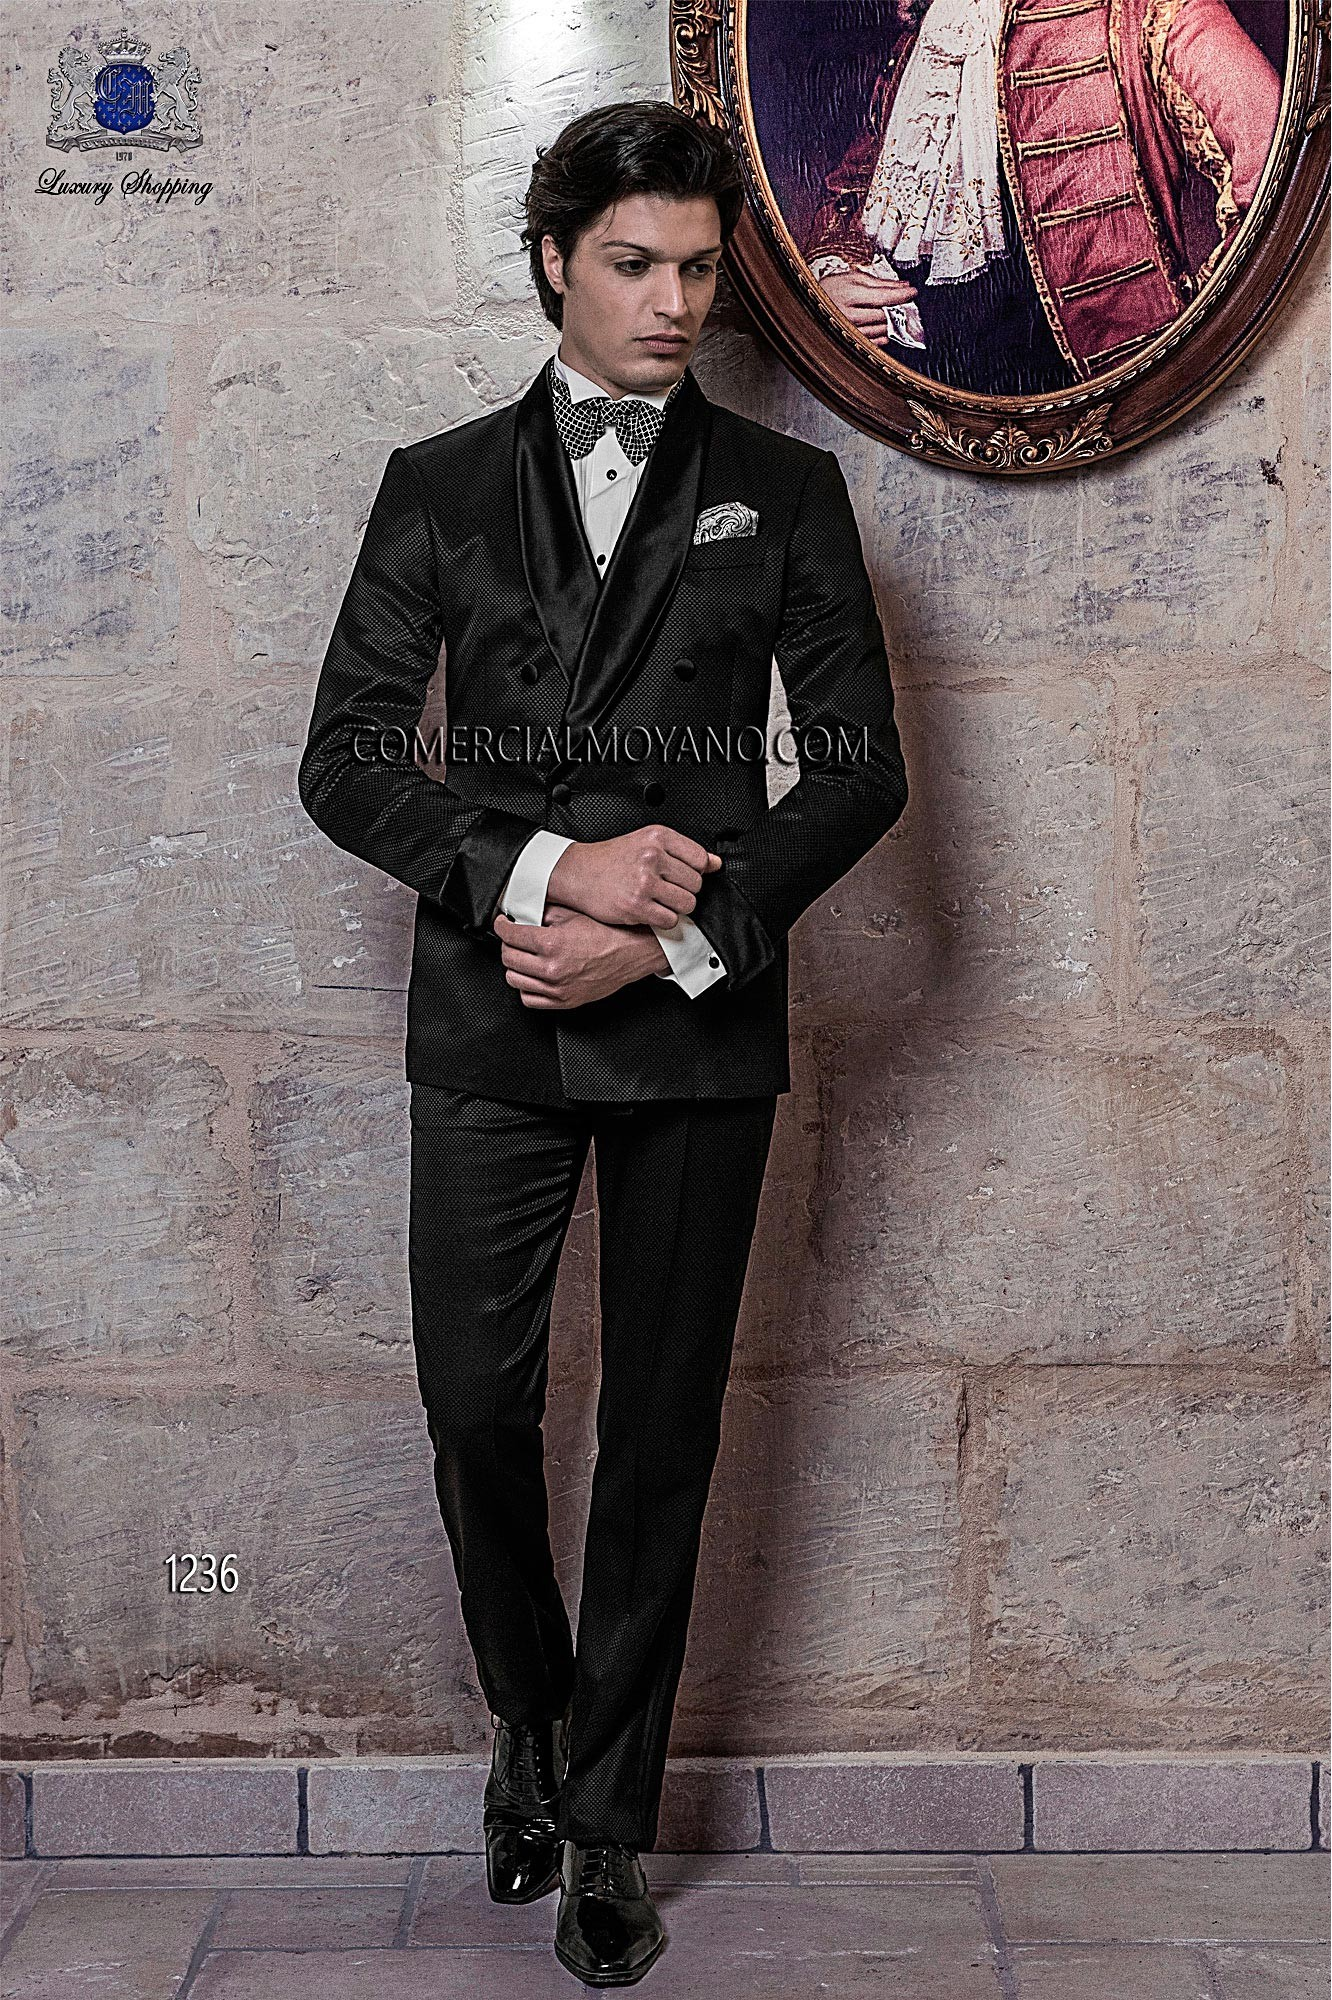 Black Tie Black men wedding suit model 1236 Ottavio Nuccio Gala